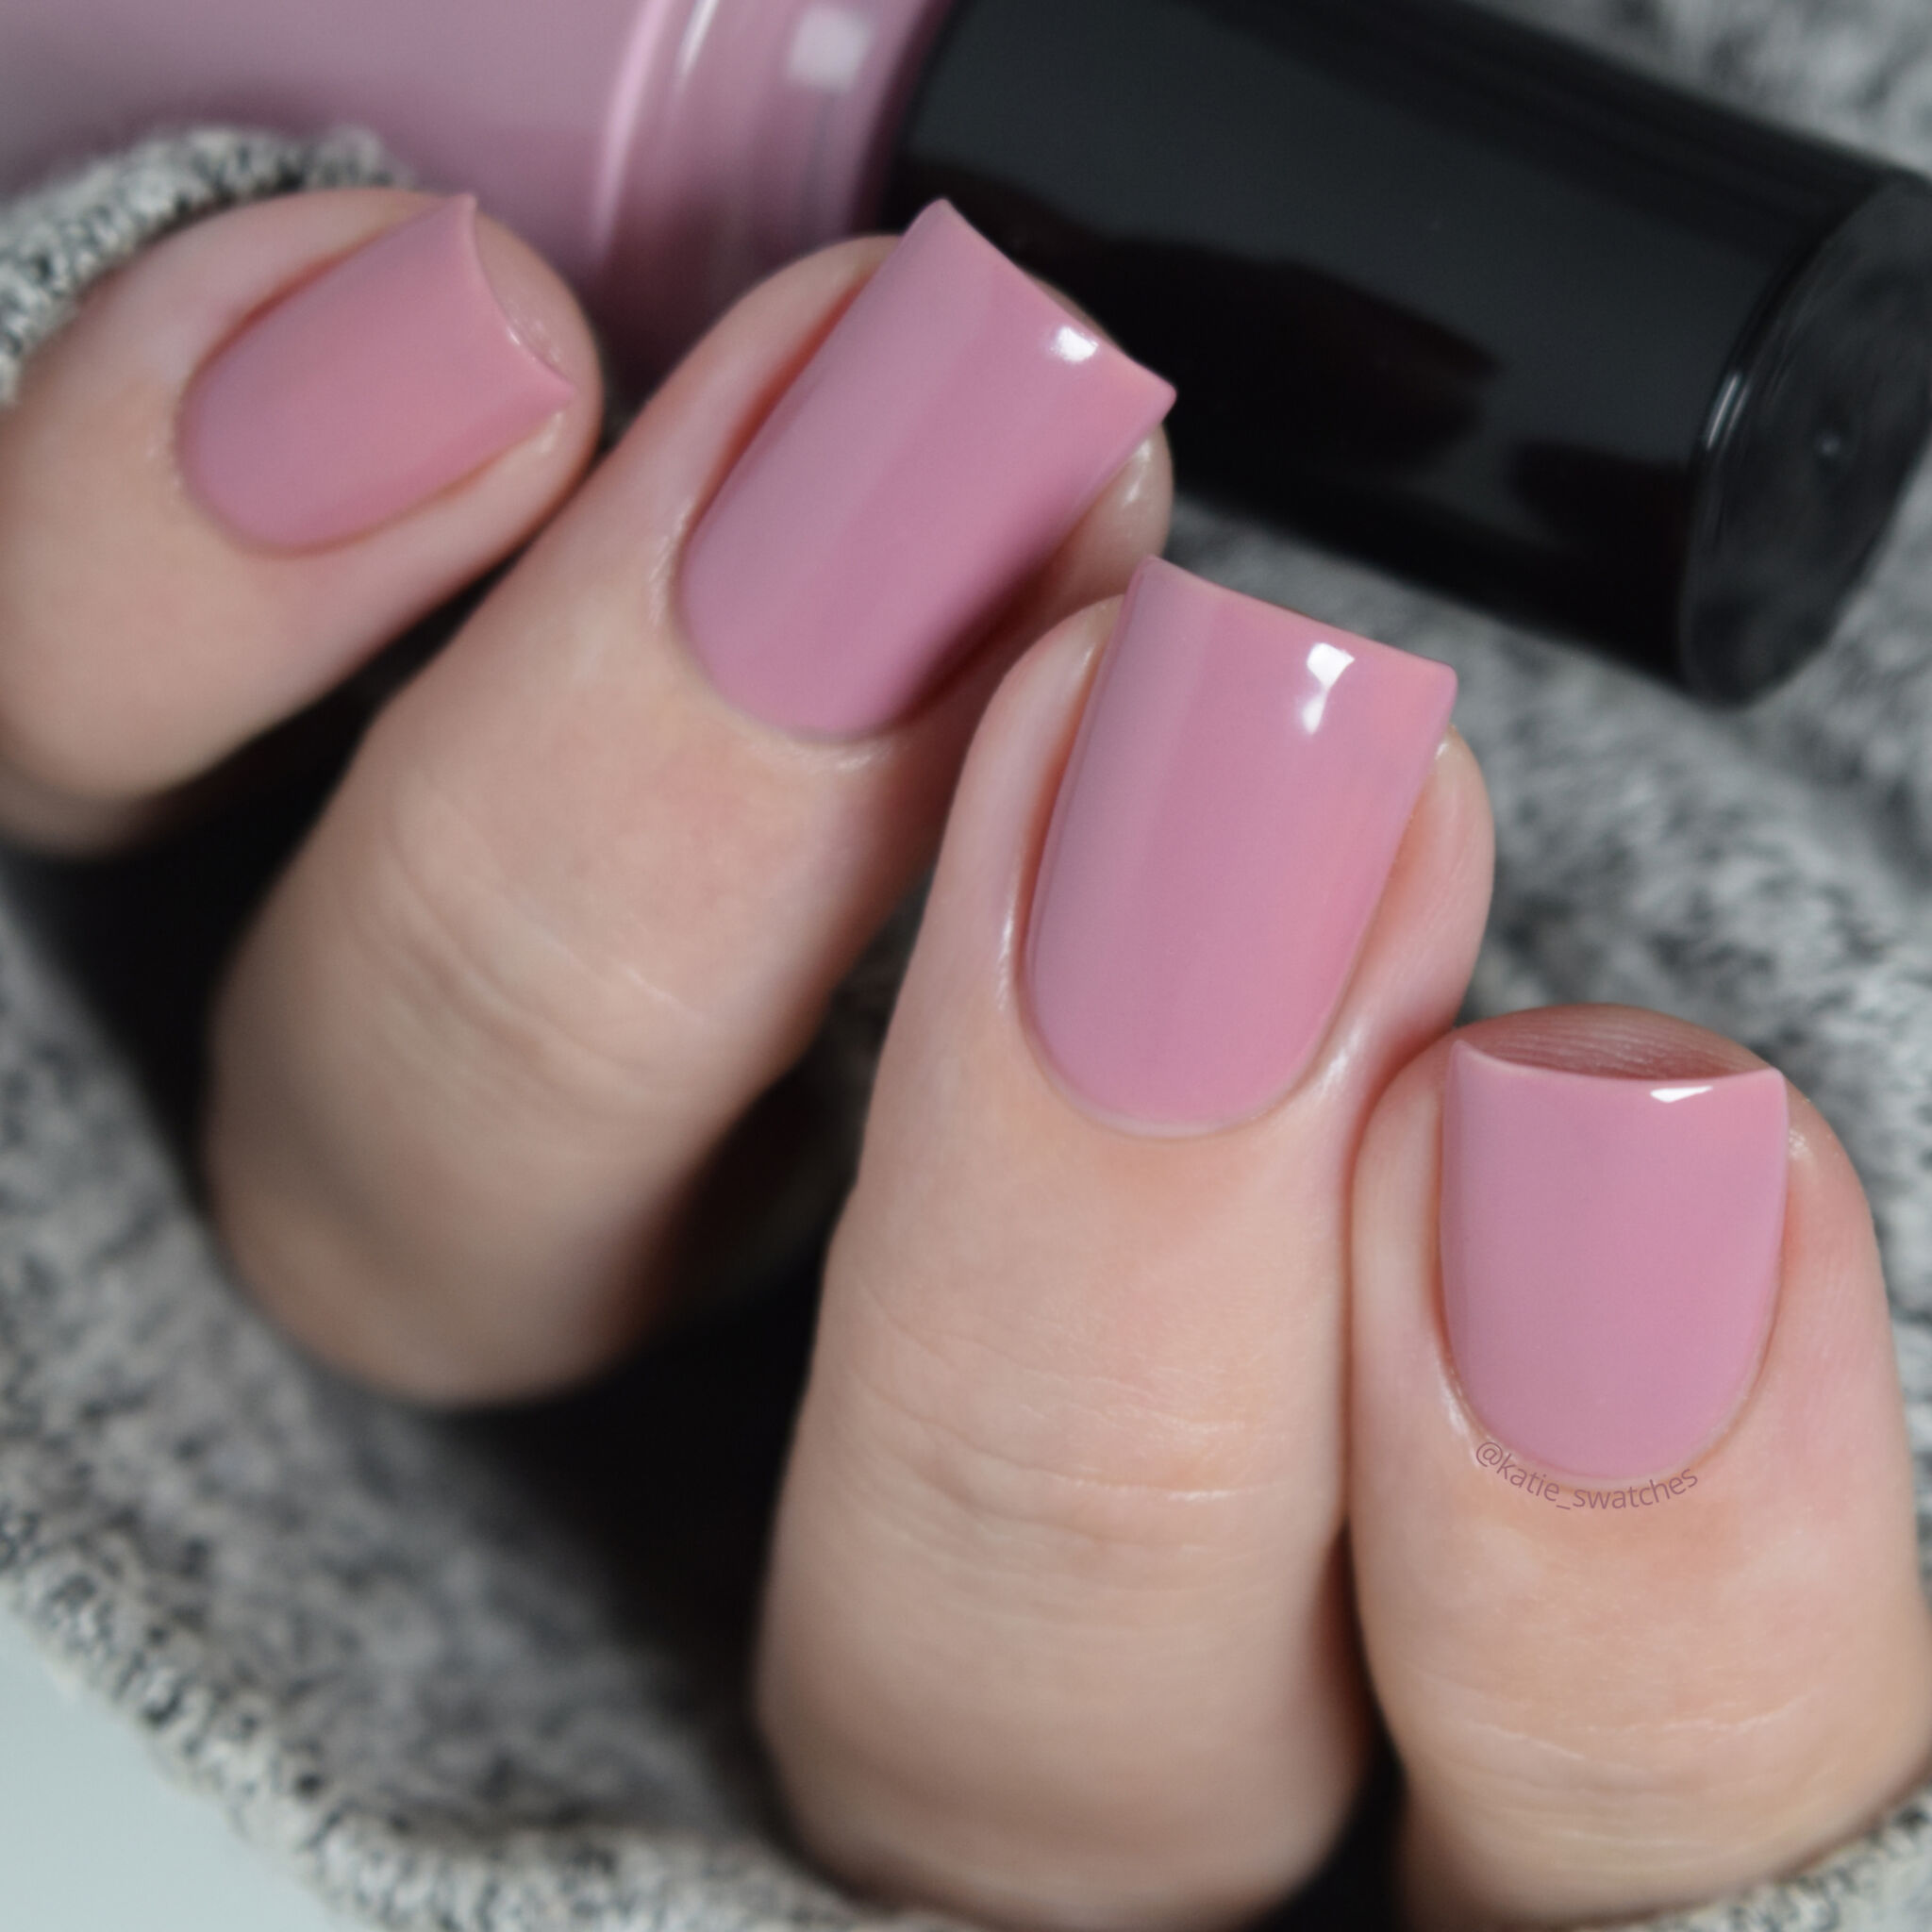 Girly Bits - For Once and Floral medium dusty rose crelly nail polish swatch